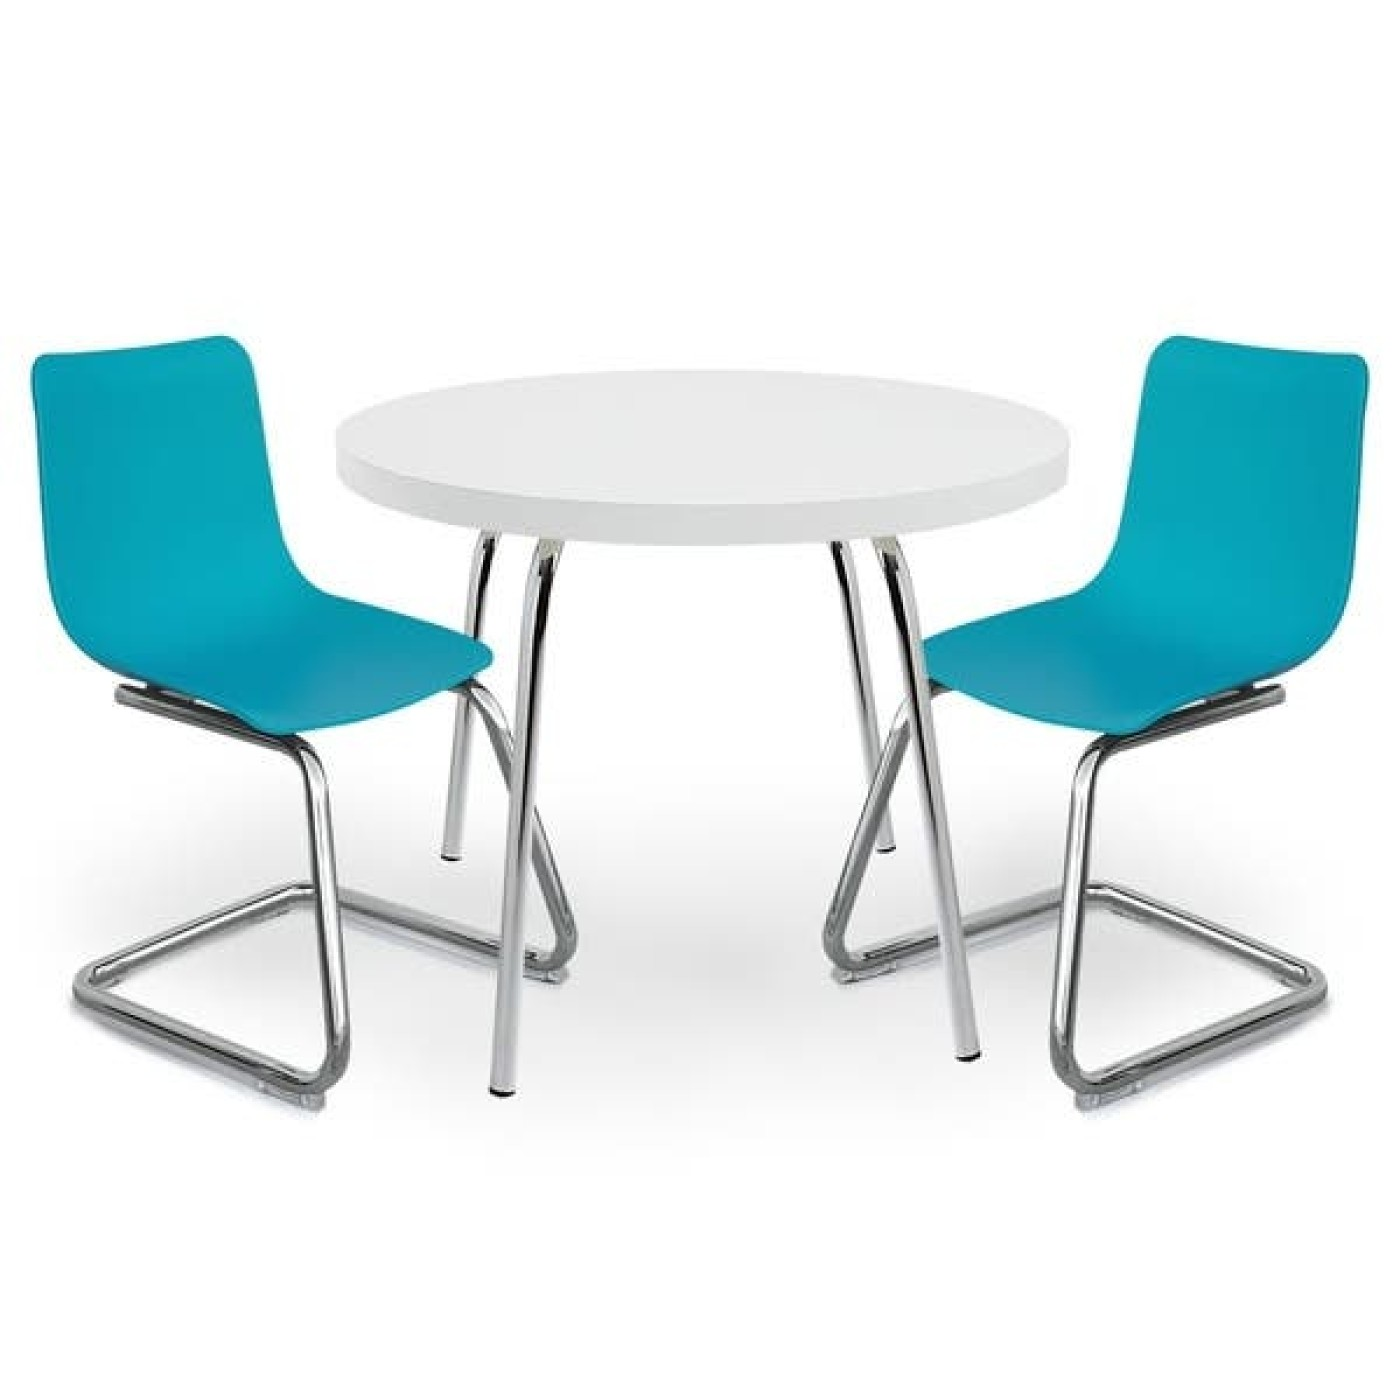 Modern Kids Round Table and Chairs - Blue